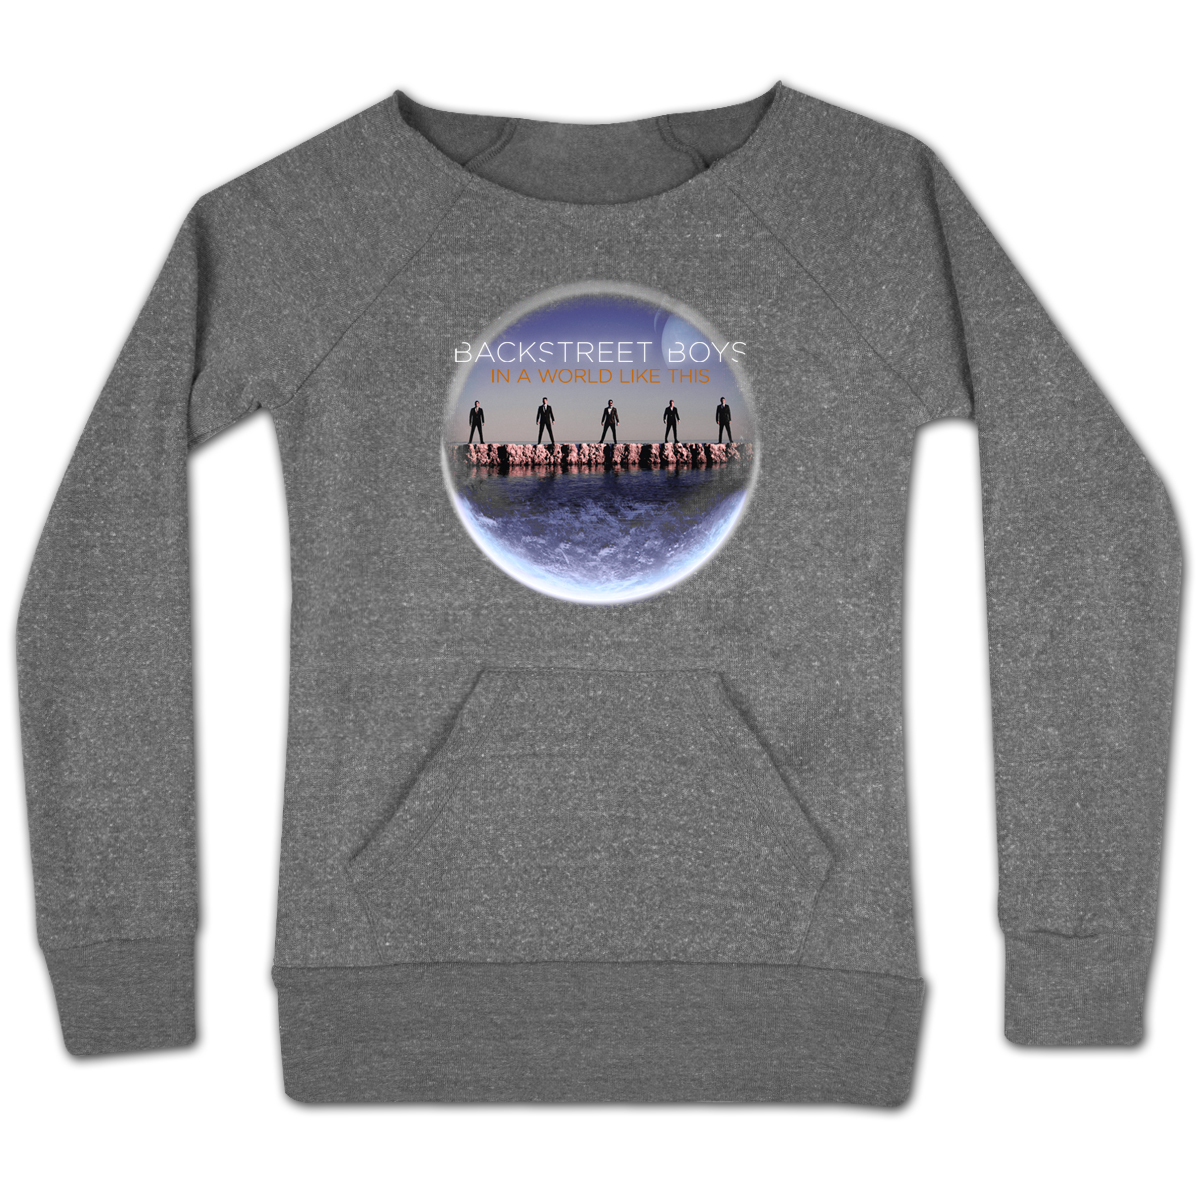 Backstreet Boys Globe Girls Sweatshirt